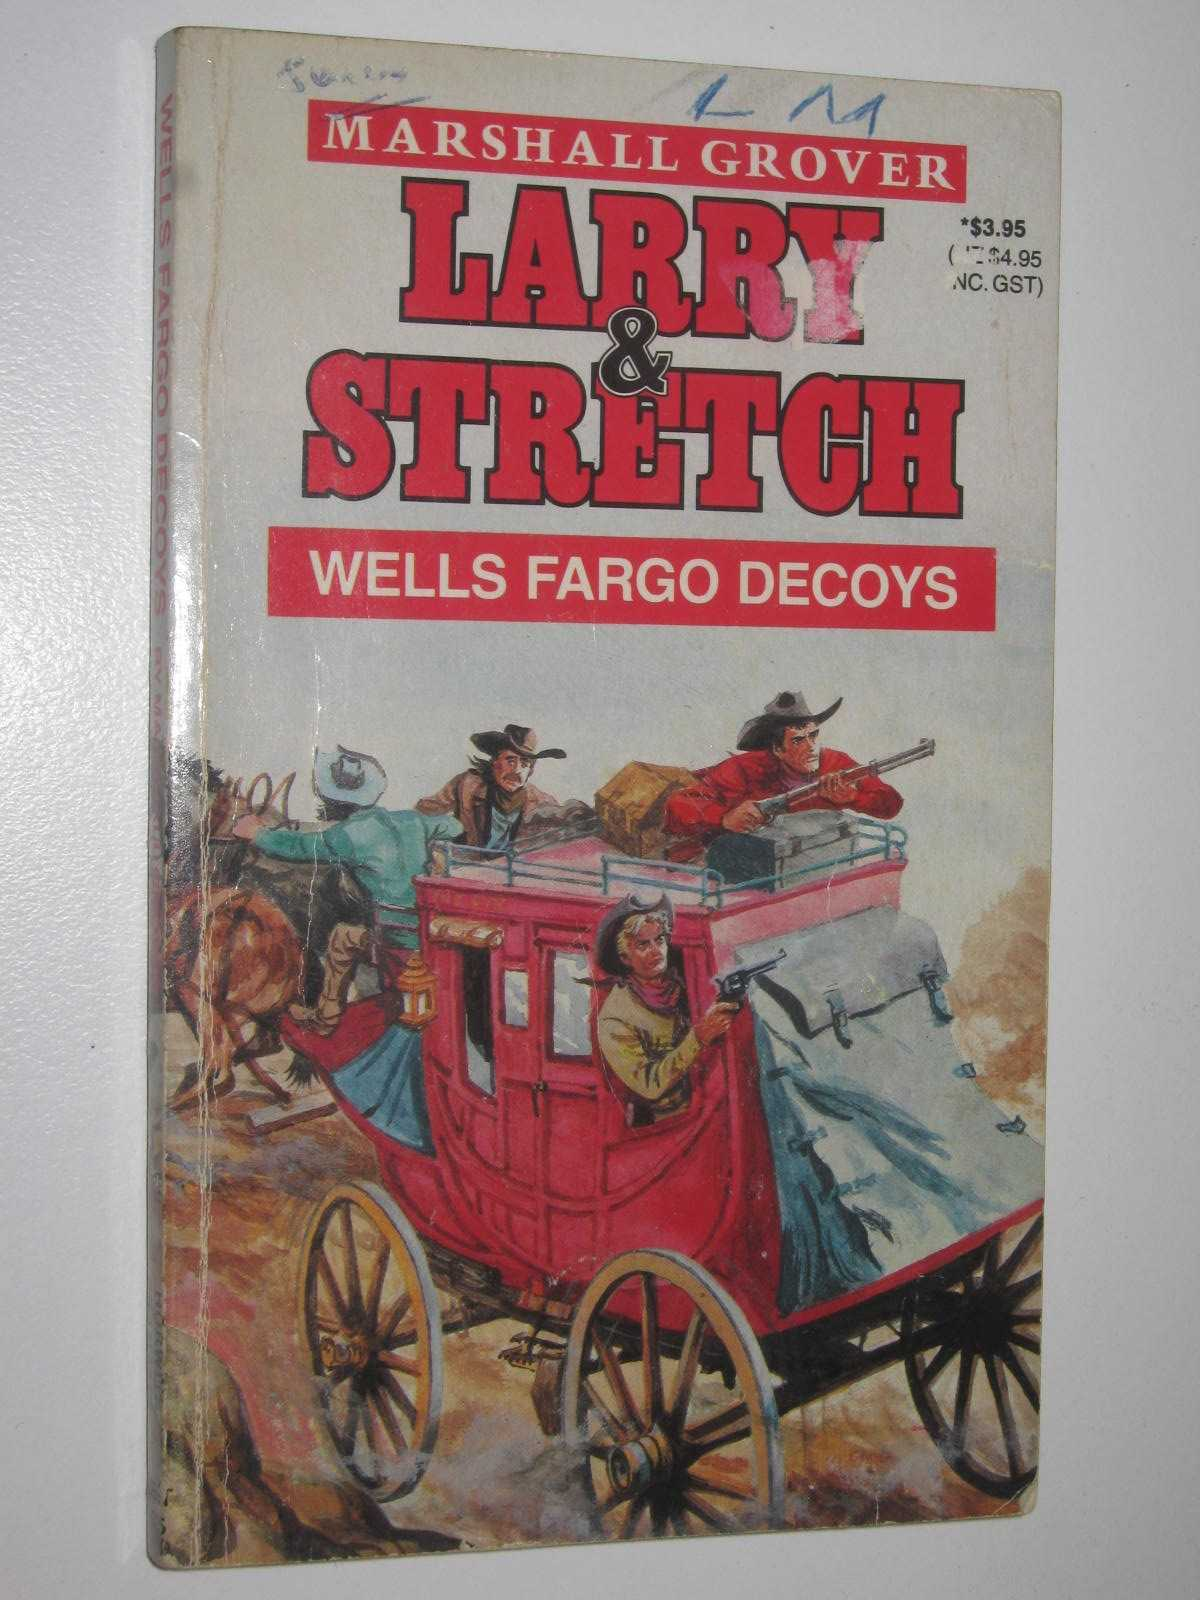 Image for Wells Fargo Decoys - Larry and Stretch Series #325